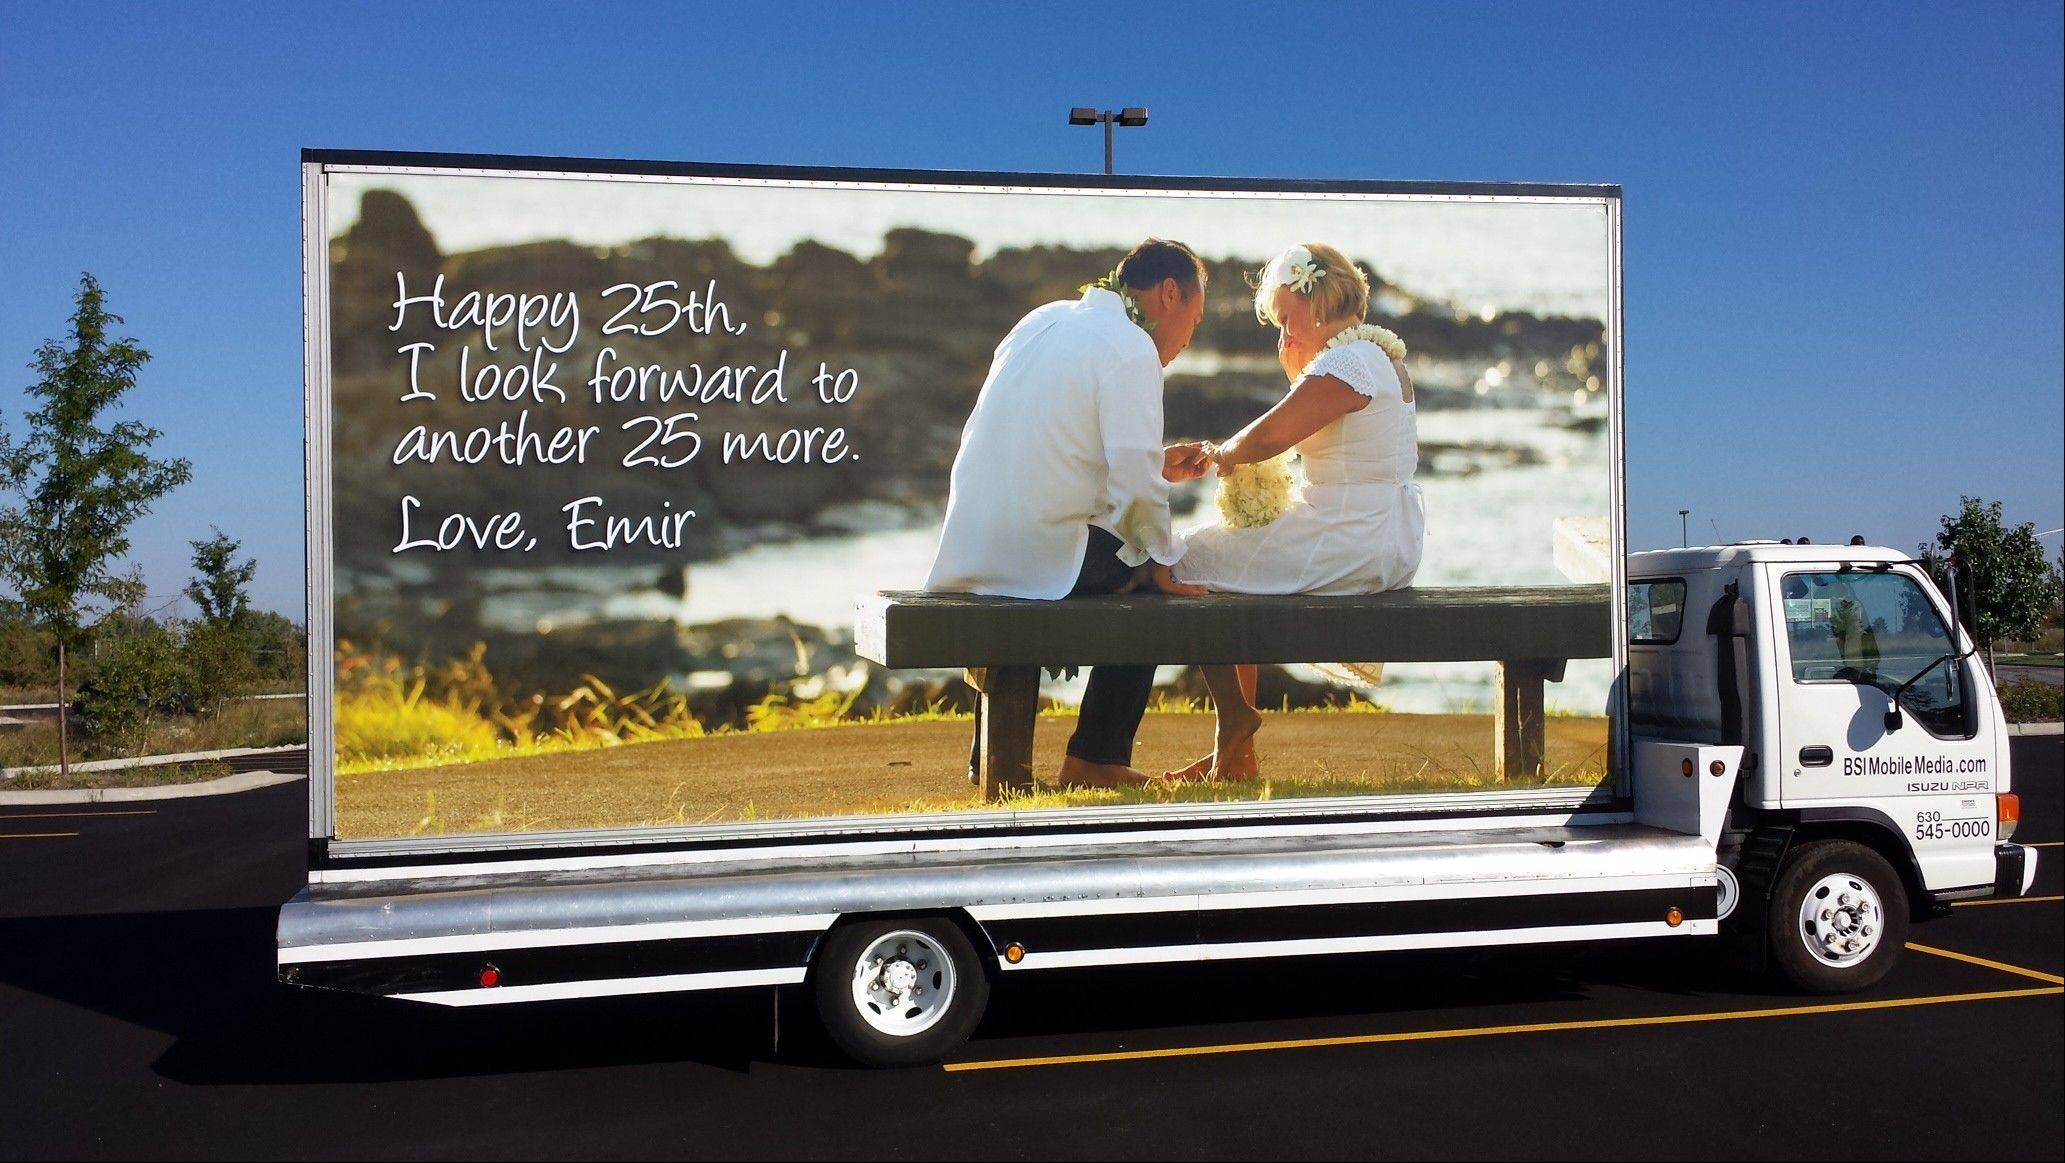 Emir Abinion, who owns a car dealership in St. Charles, celebrated his 25th wedding anniversary with his wife, Pat, with a nice dinner and ... a two-sided traveling billboard.